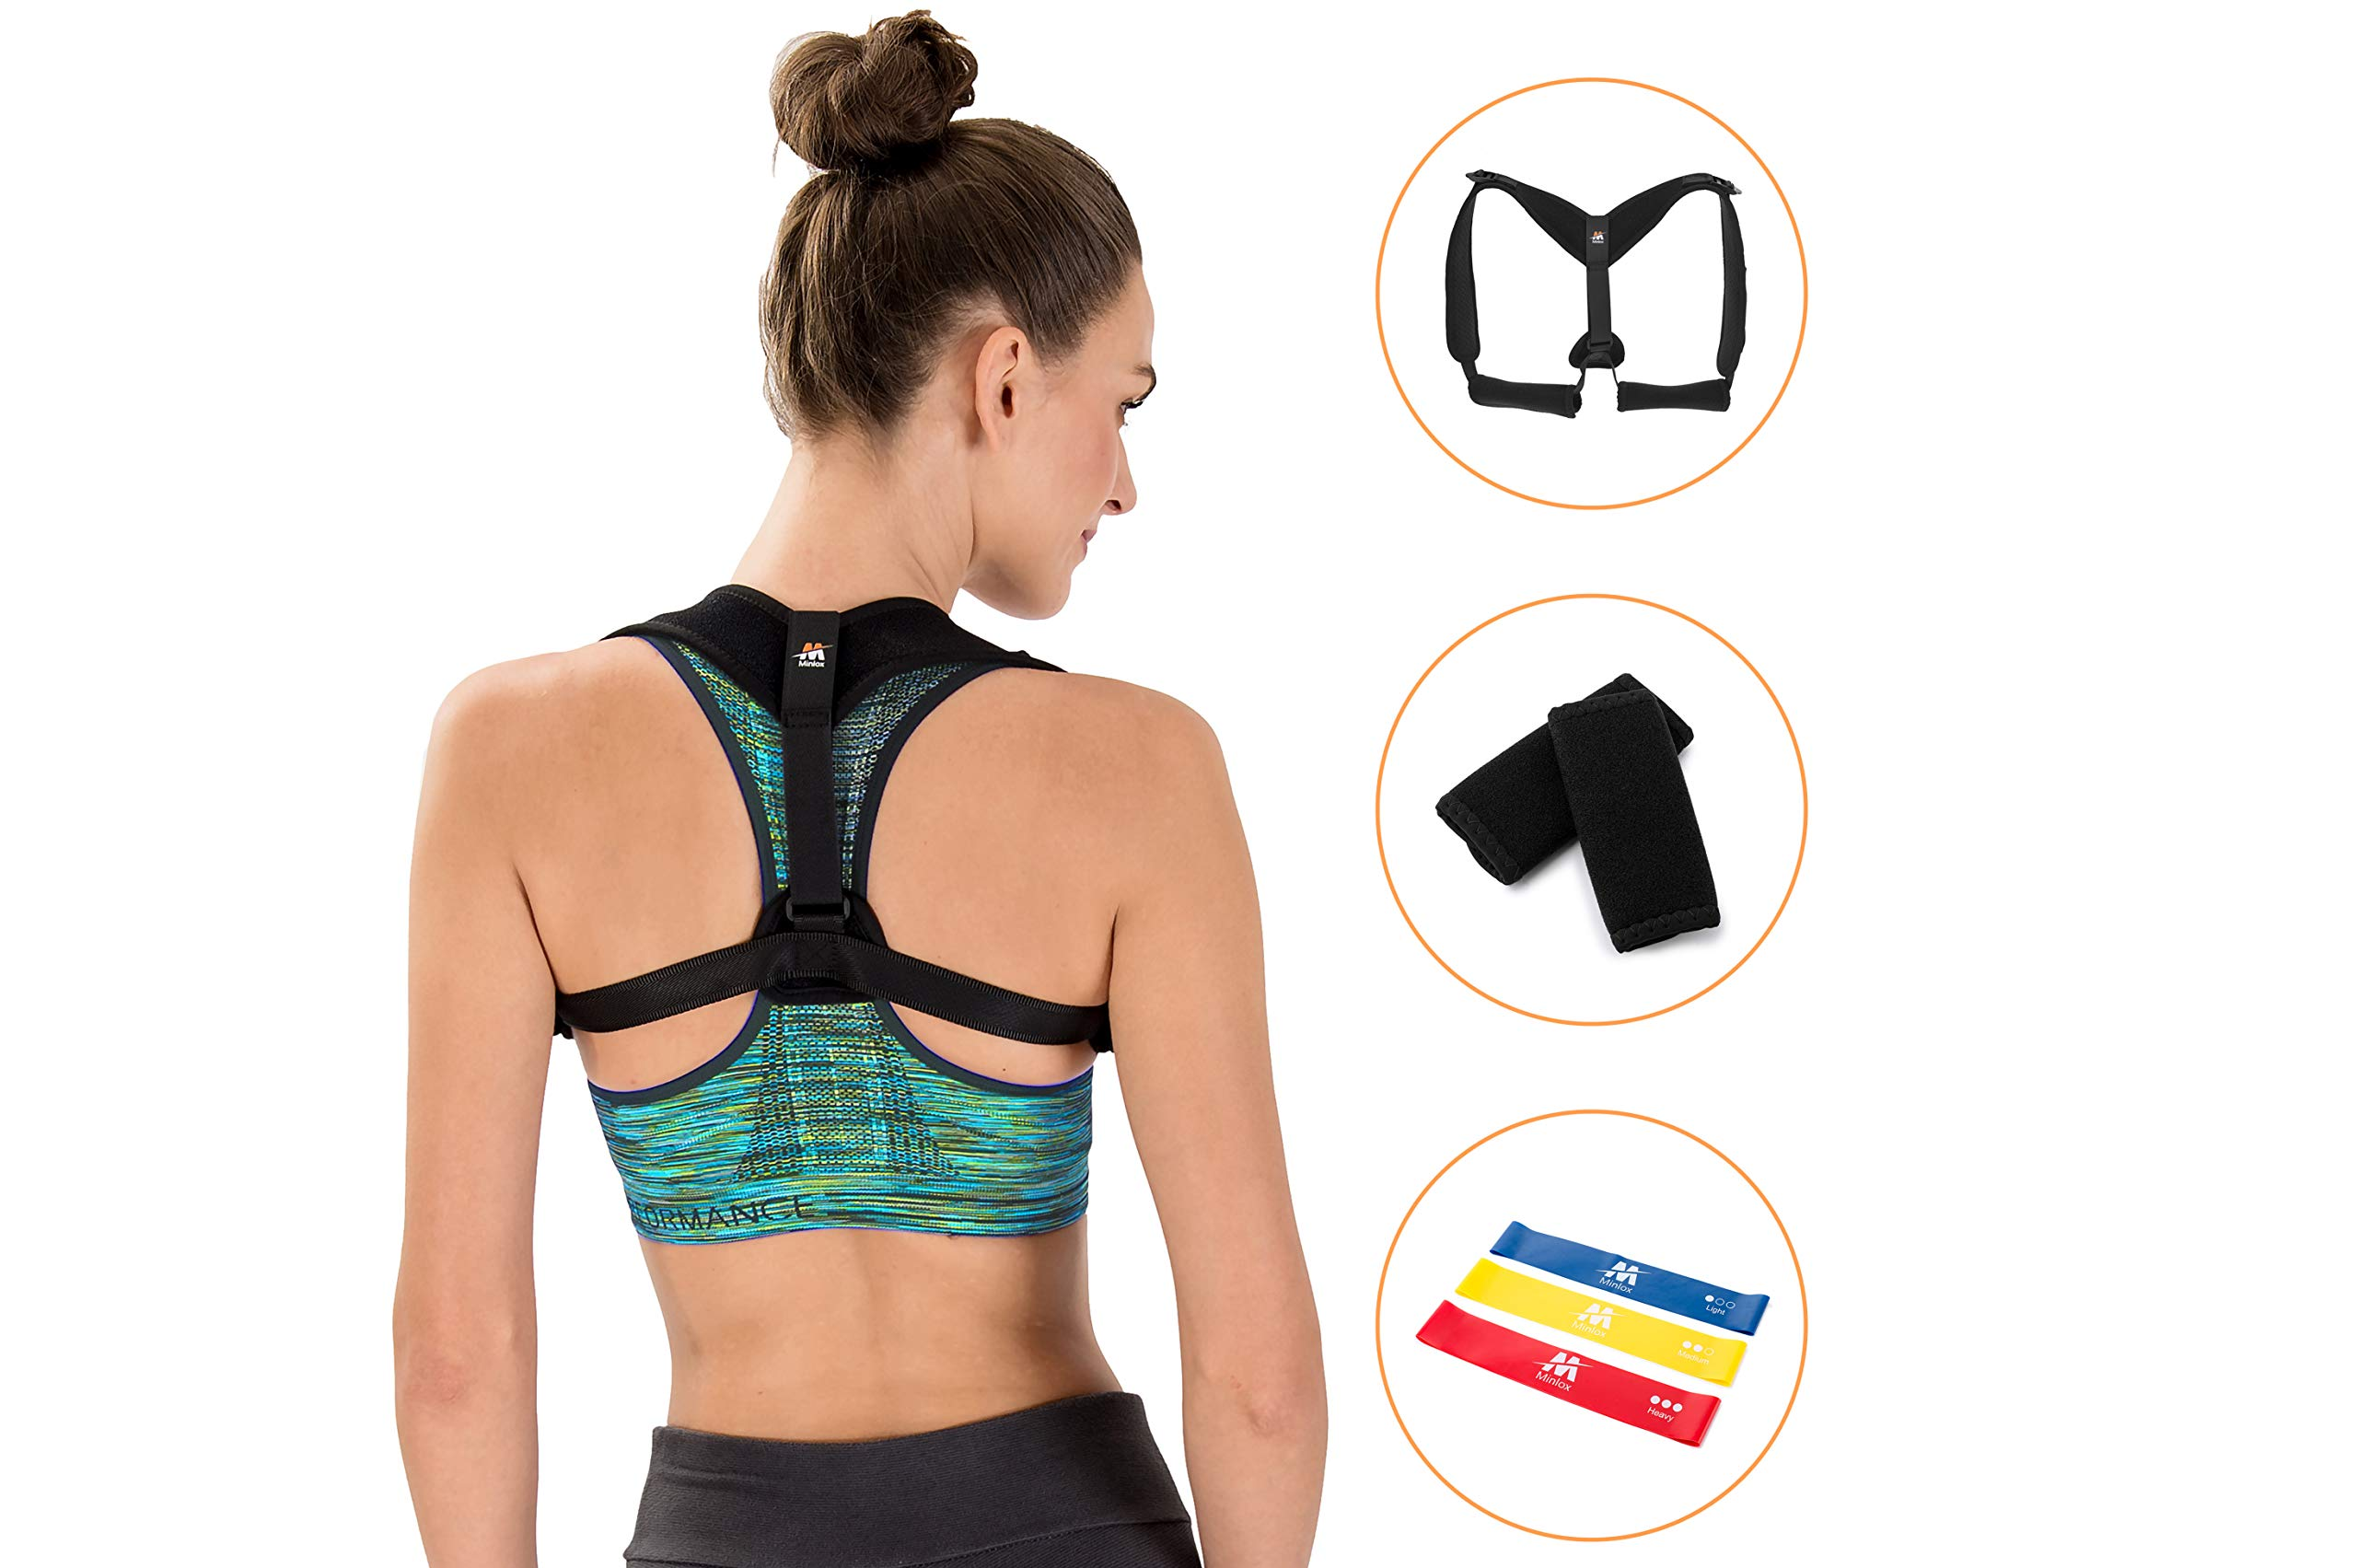 Posture Corrector for Women & Men - Effective and Comfortable - Shoulder Support & Neck Pain Relief - Include Underarm Pads and Bonus Set of Resistance Loop Exercise Bands with Carry Bag